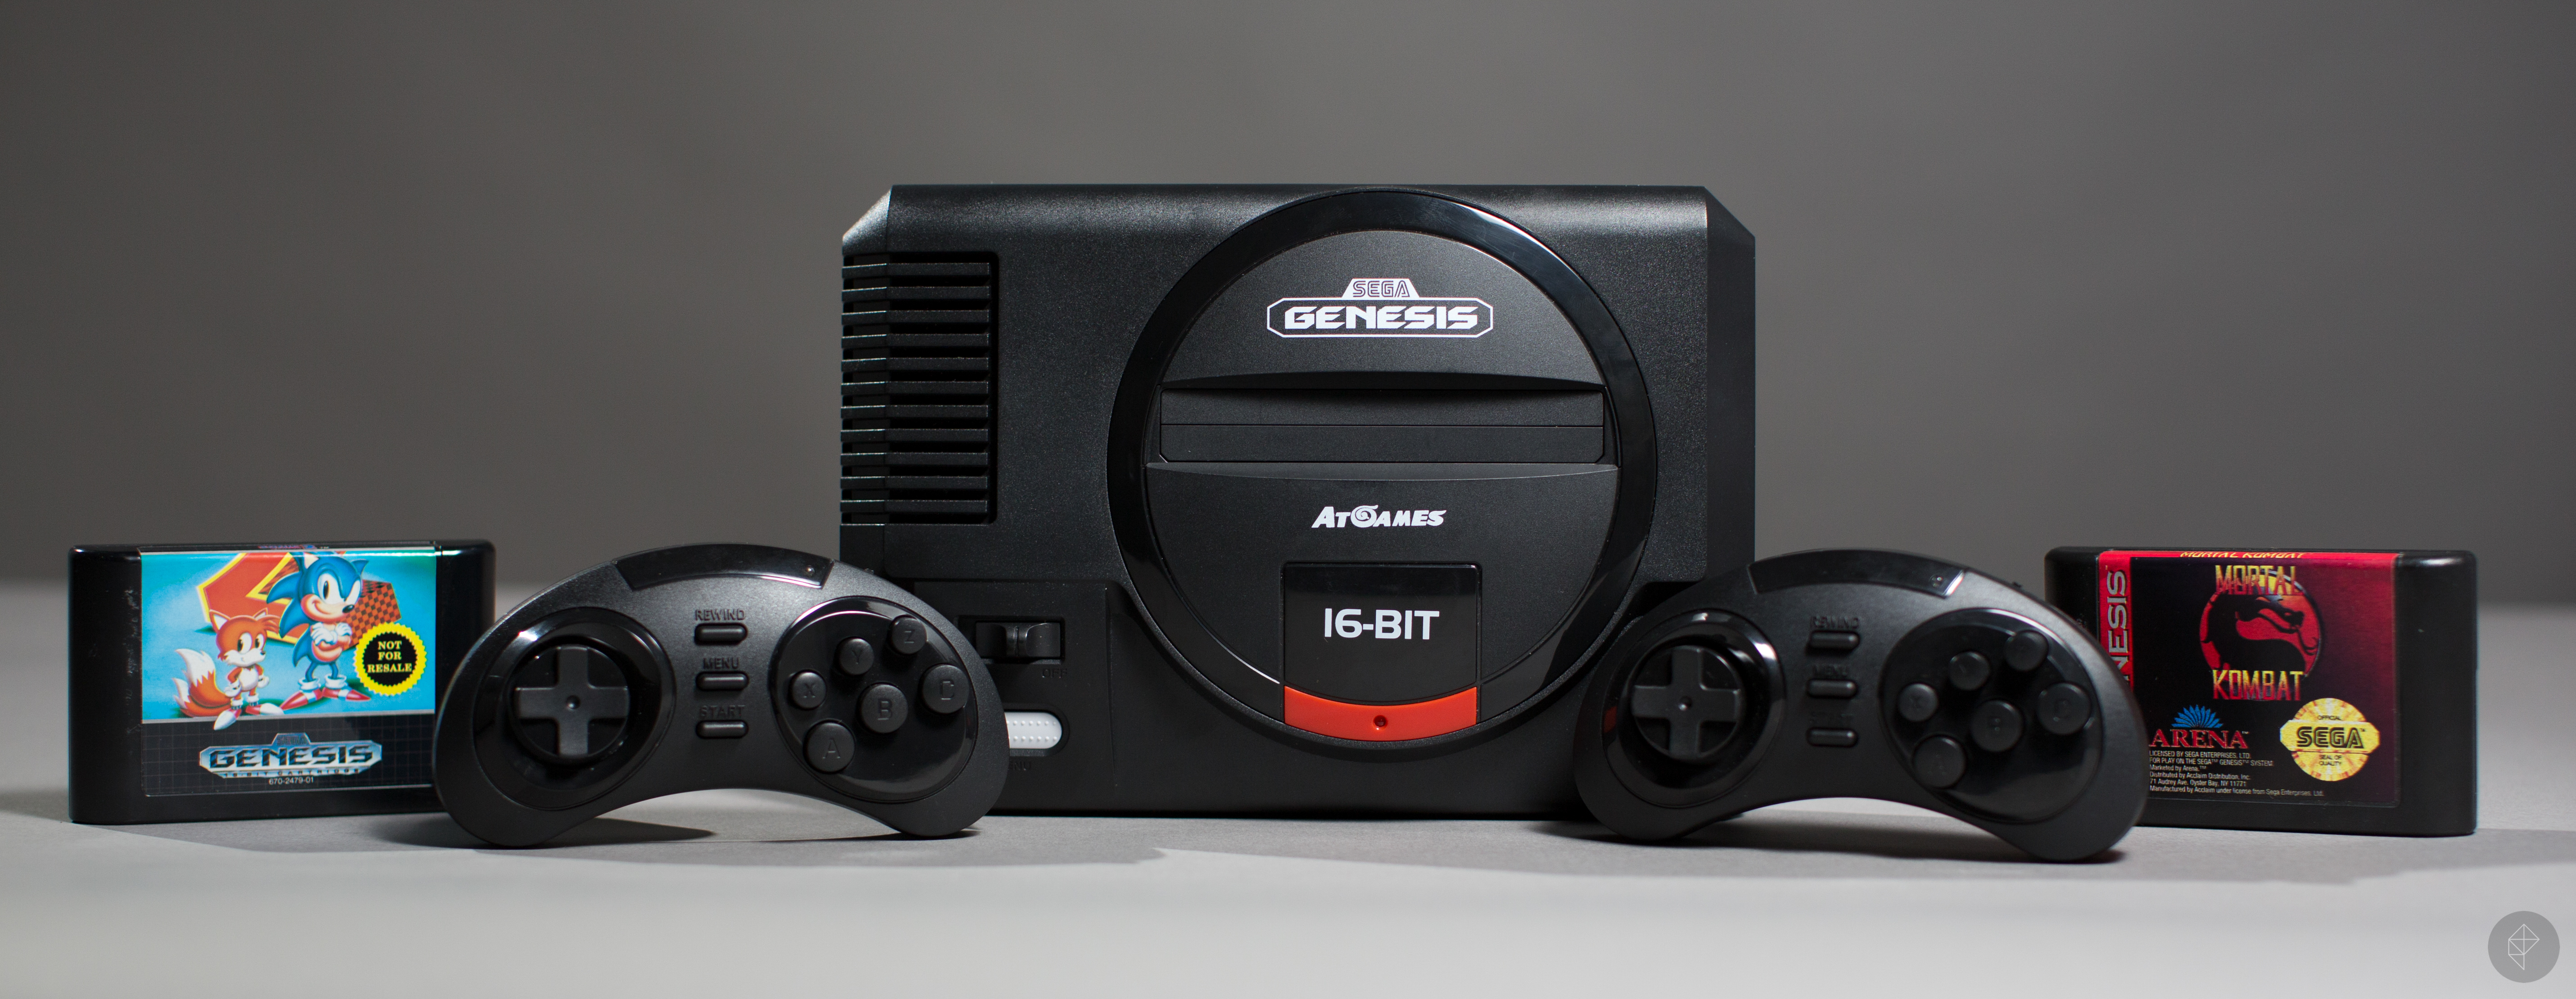 Sega Genesis Flashback Hd Review Polygon The Wireless Remote Control System Has One Mode T You